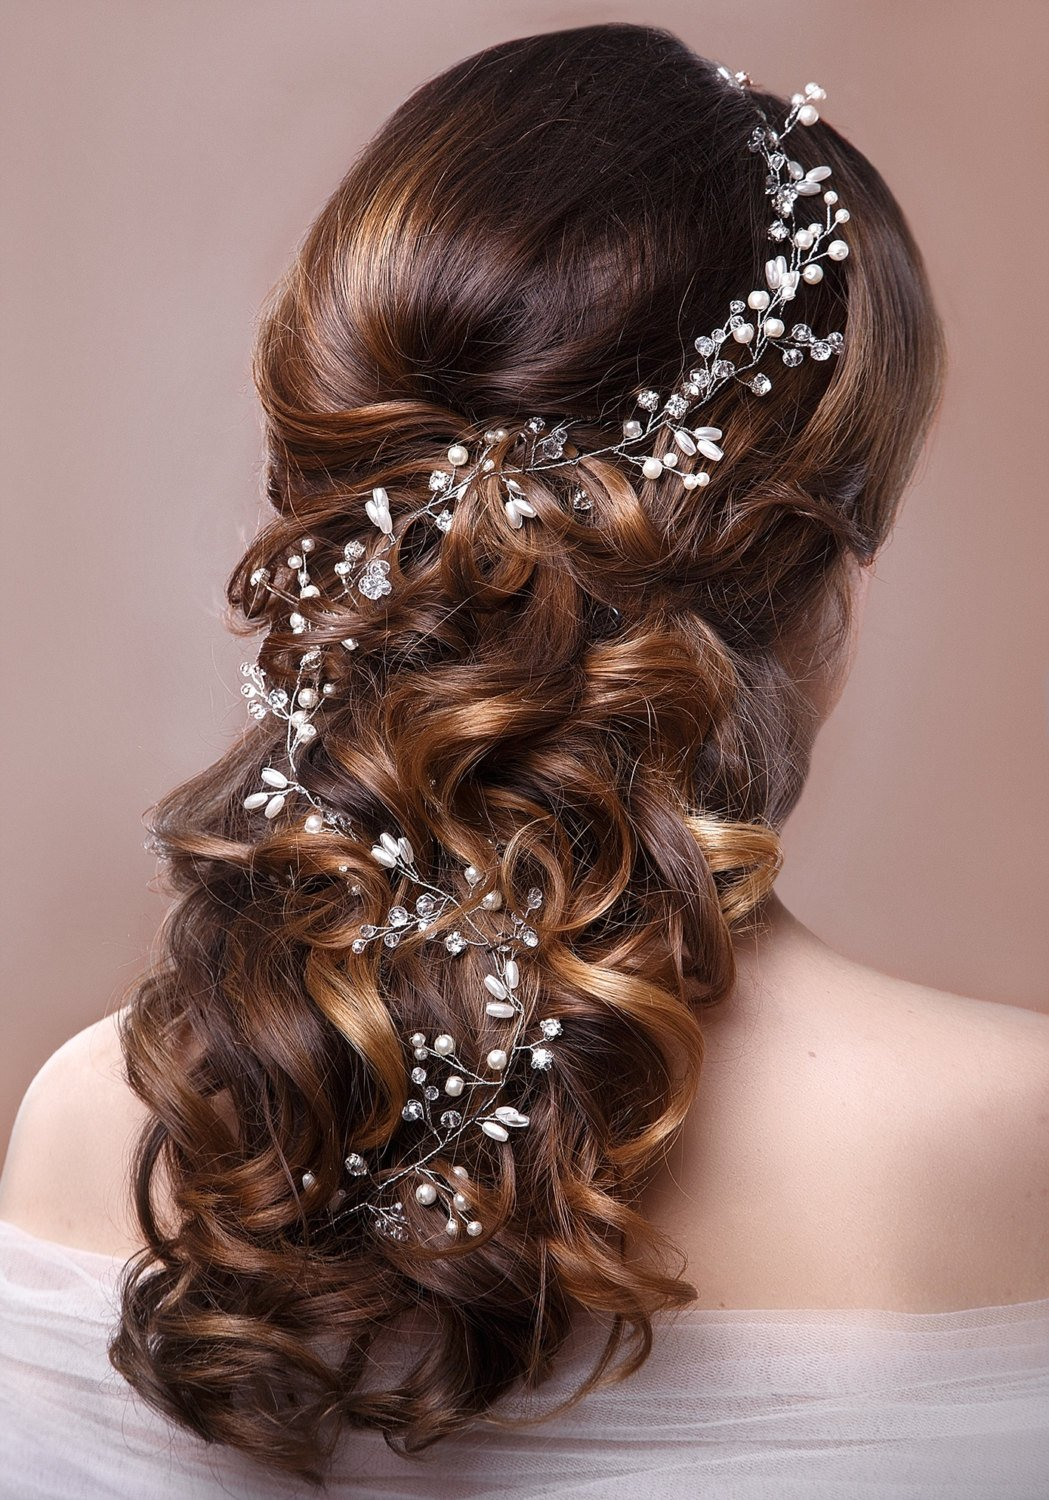 Bridal Hair Vine Wedding Tiara Hairpiece, Headpiece Accessory, Pearl Hair Vine, Greek Style Bridal Braid.jpg